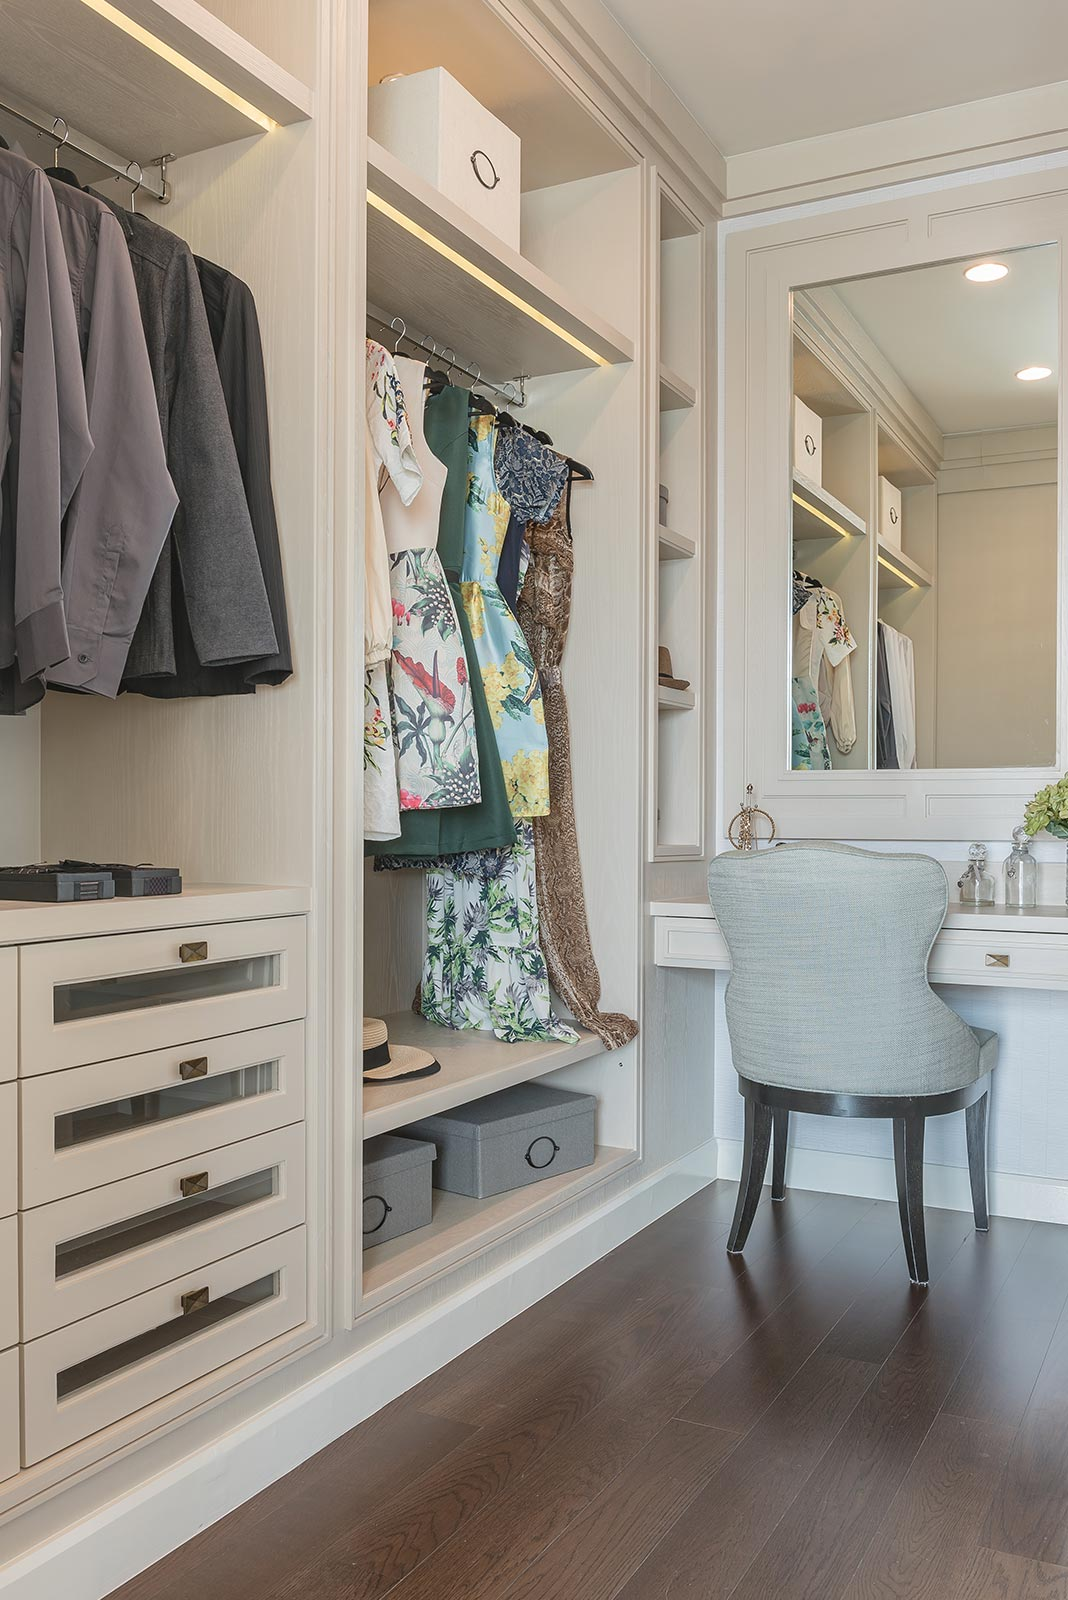 High End Vanity Built In Custom Closet | Sunset Coast Construction Services, LLC